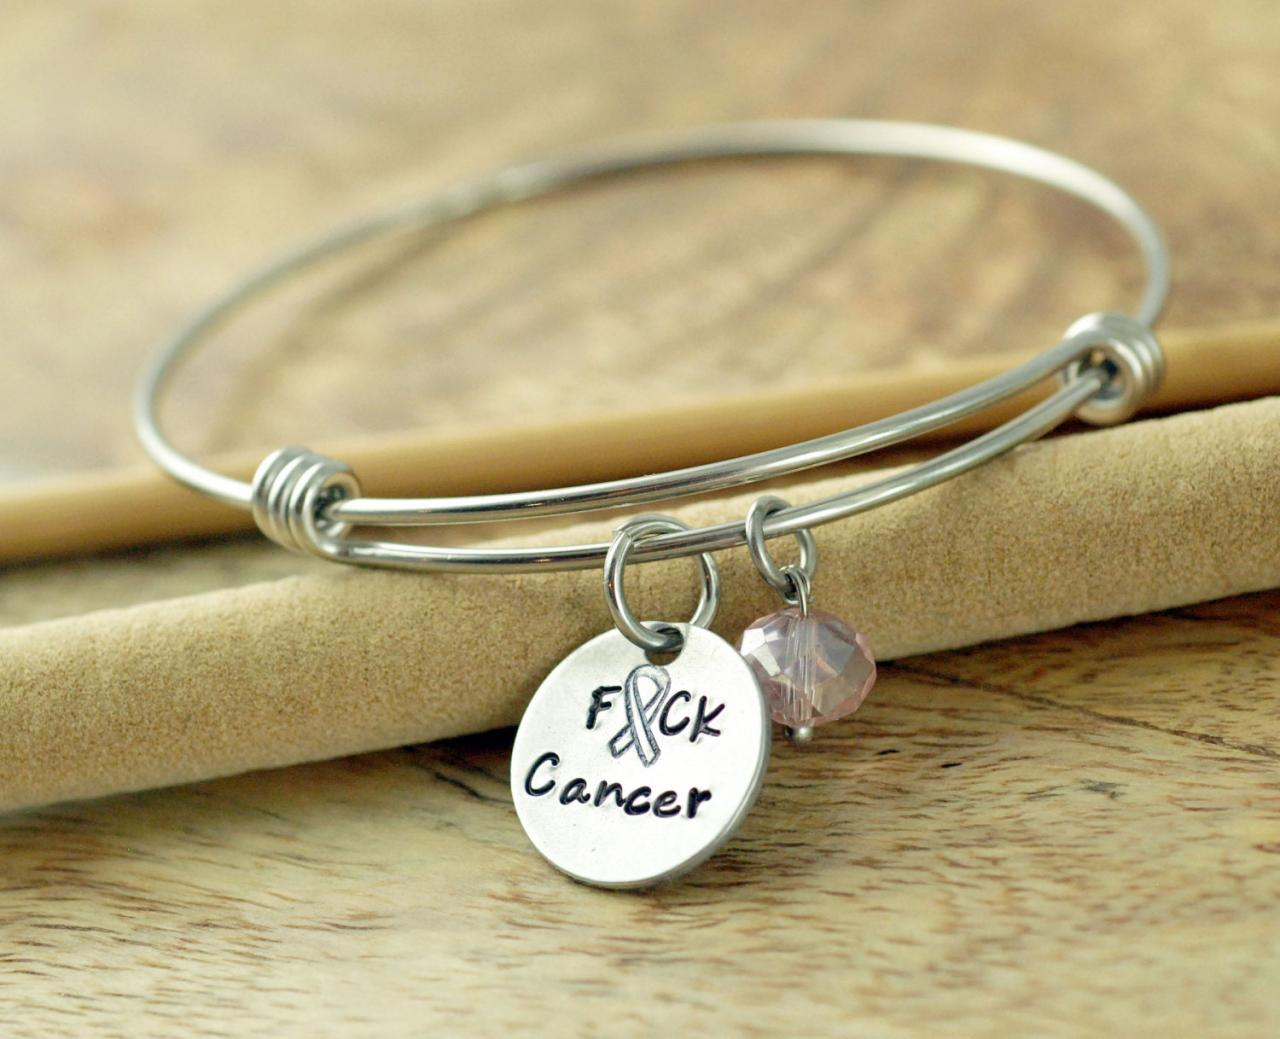 Personalized Hand Stamped Bangle Bracelet T Cancer Awareness Jewelry F Ck